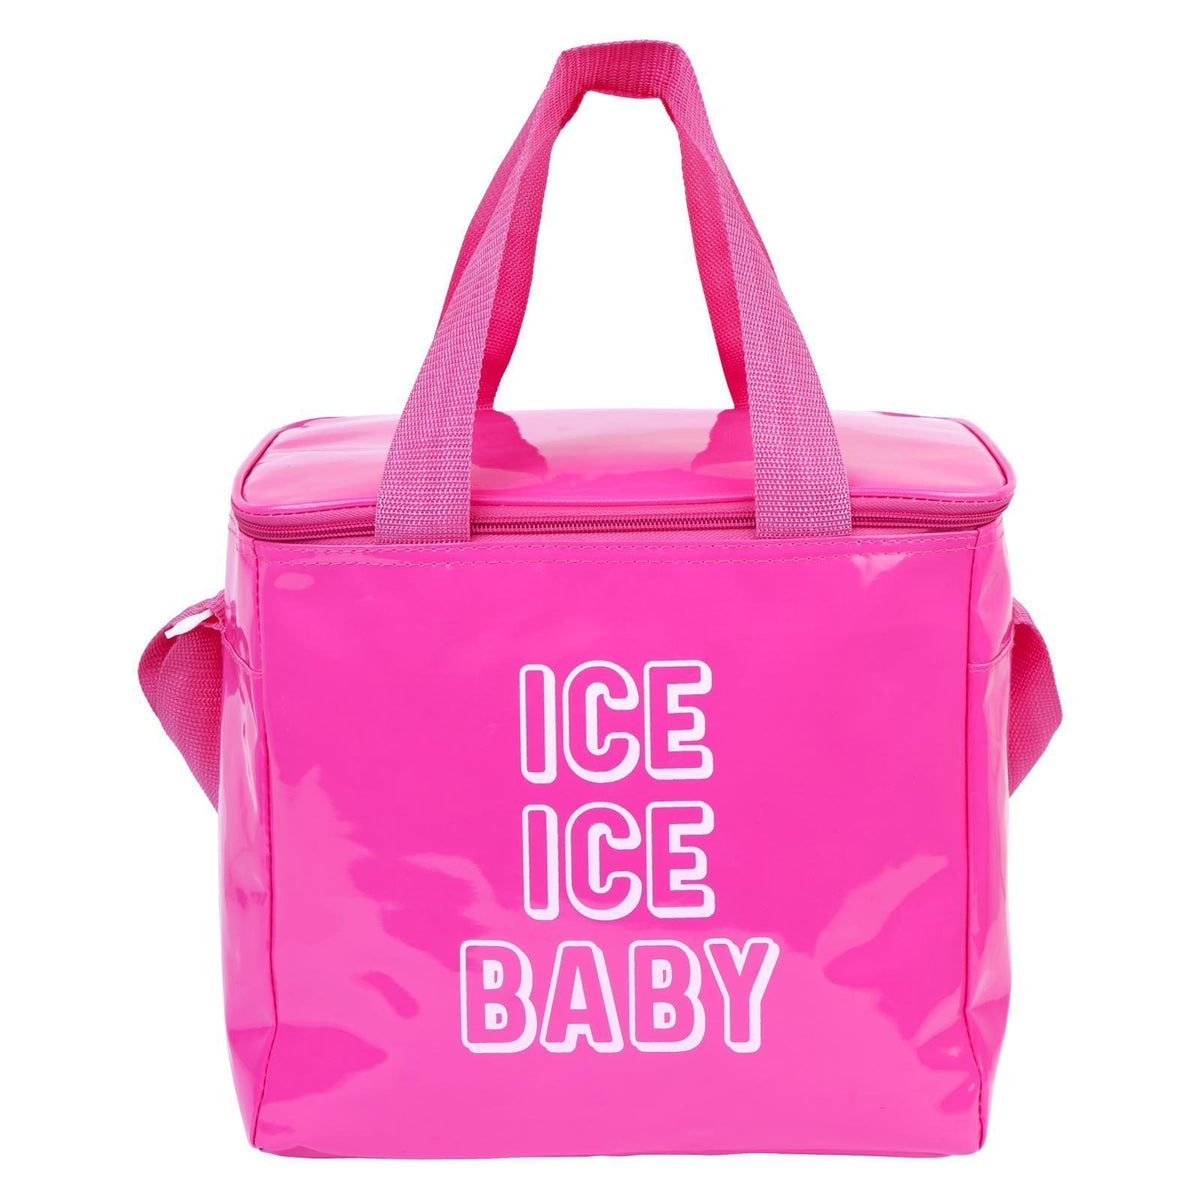 Beach Cooler Bag Large | Neon Pink